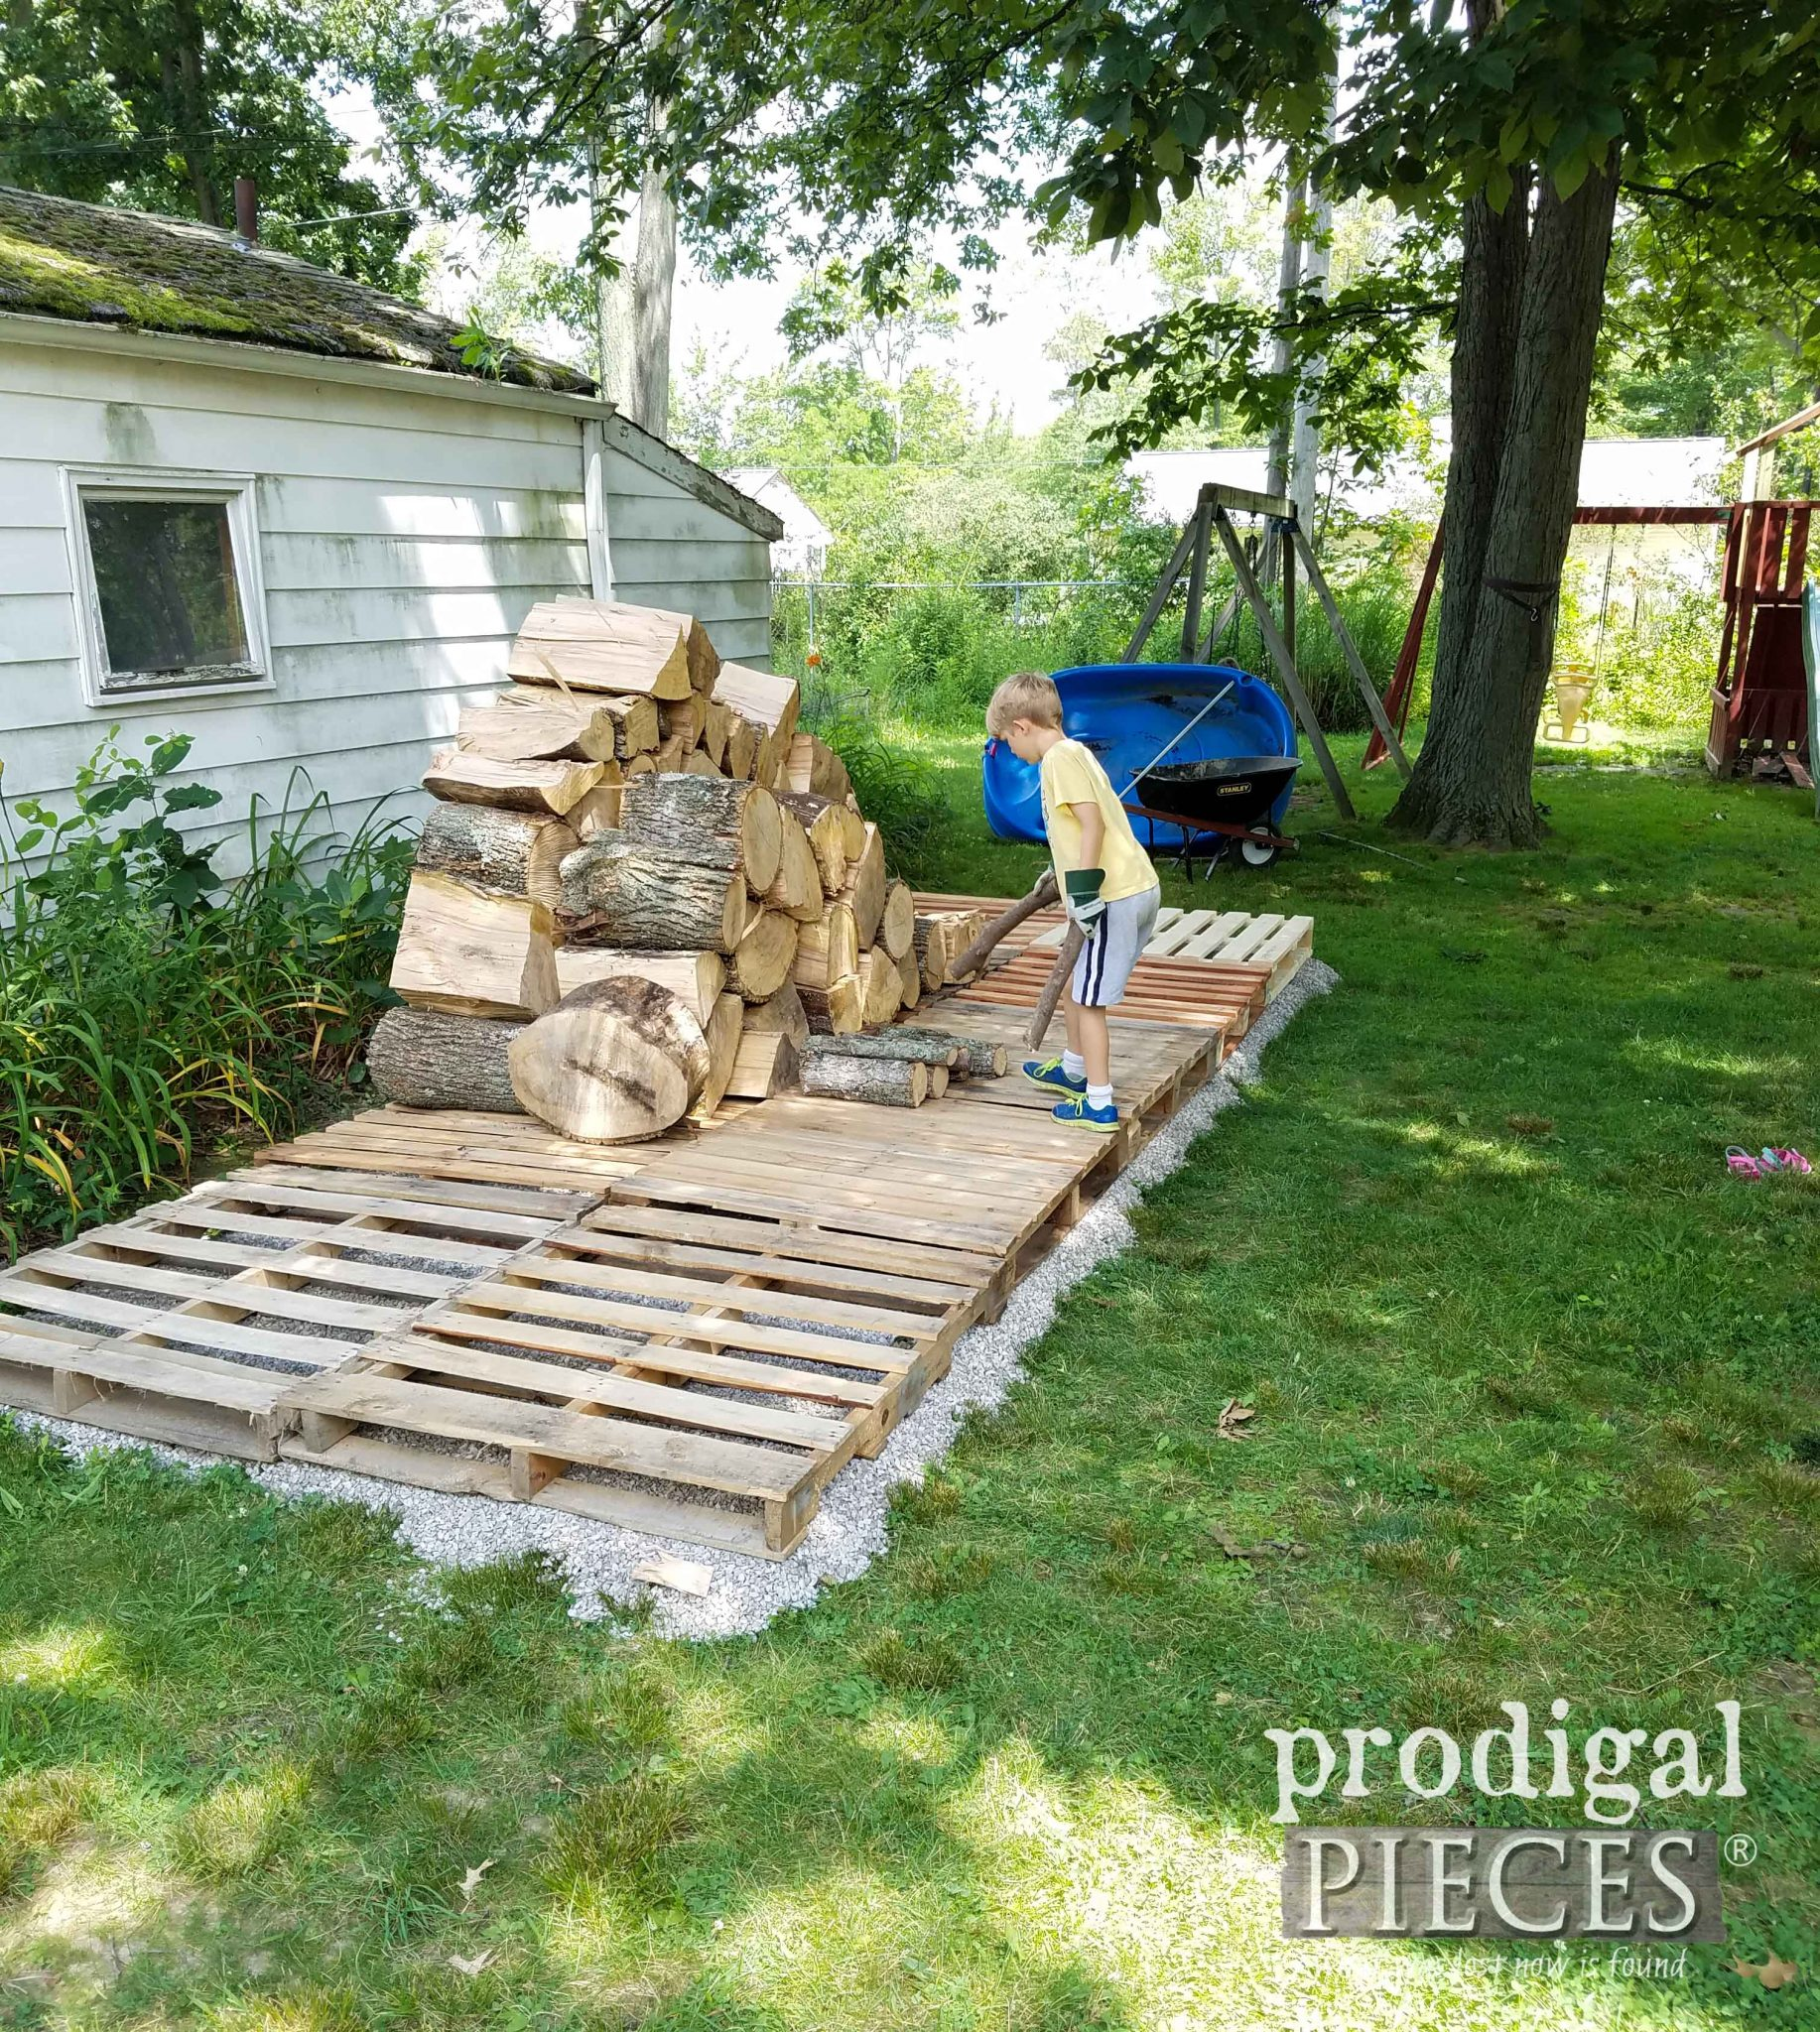 Beginning of Wood Shed | prodigalpieces.com